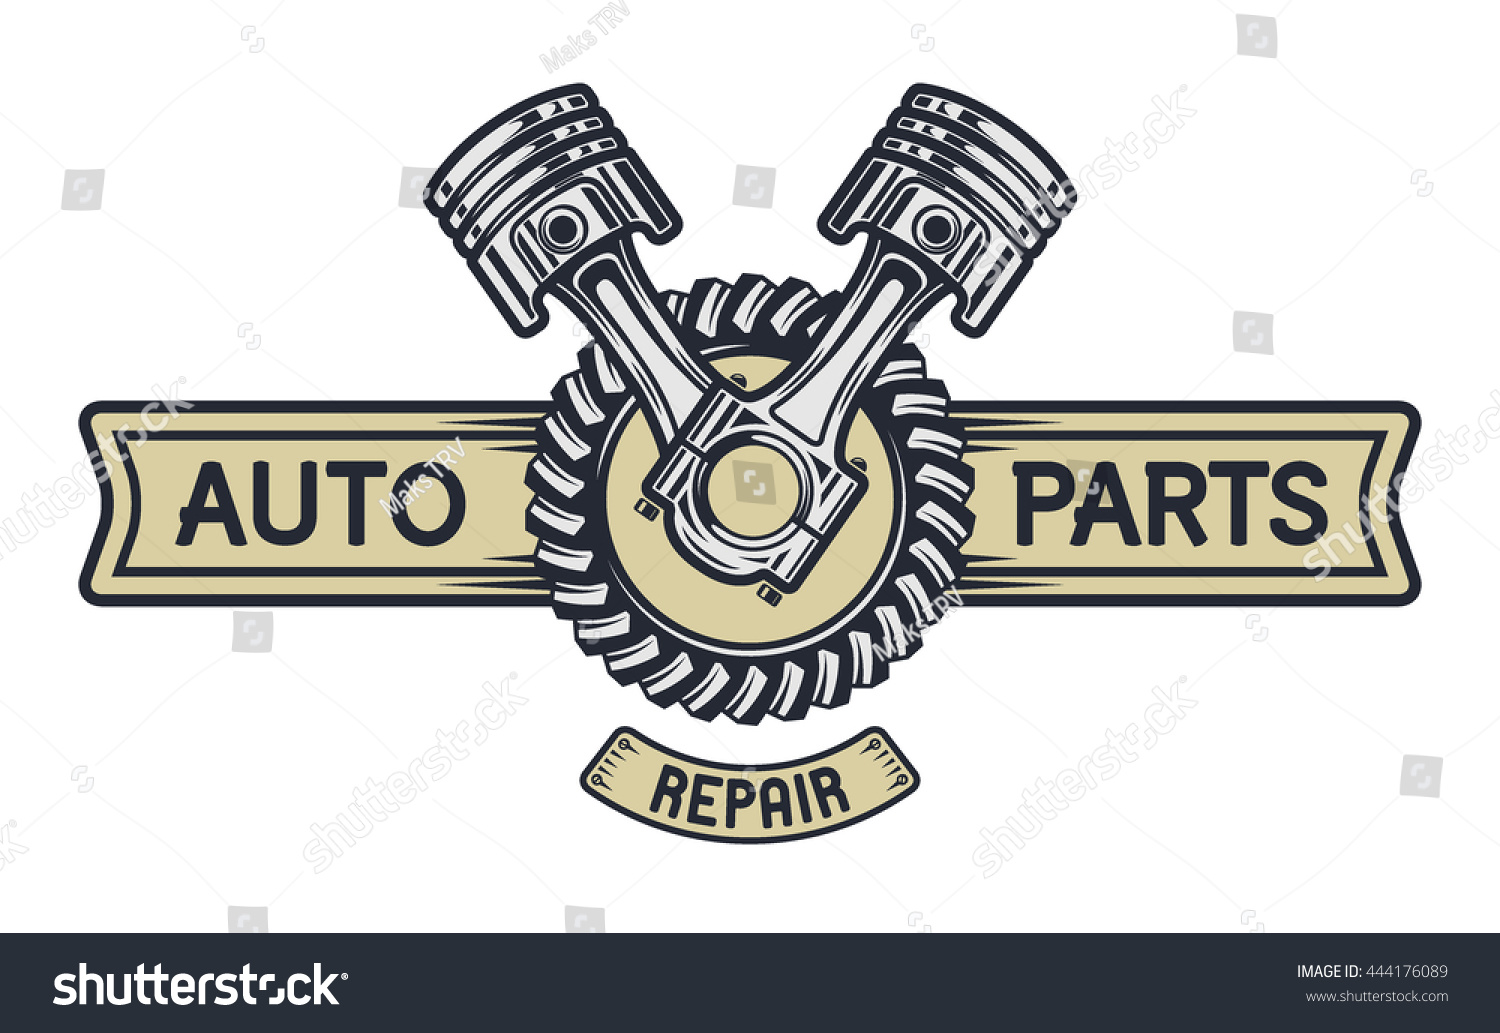 Piston gear space text repair service stock illustration 444176089 repair service emblem signboard illustration vector copy biocorpaavc Gallery